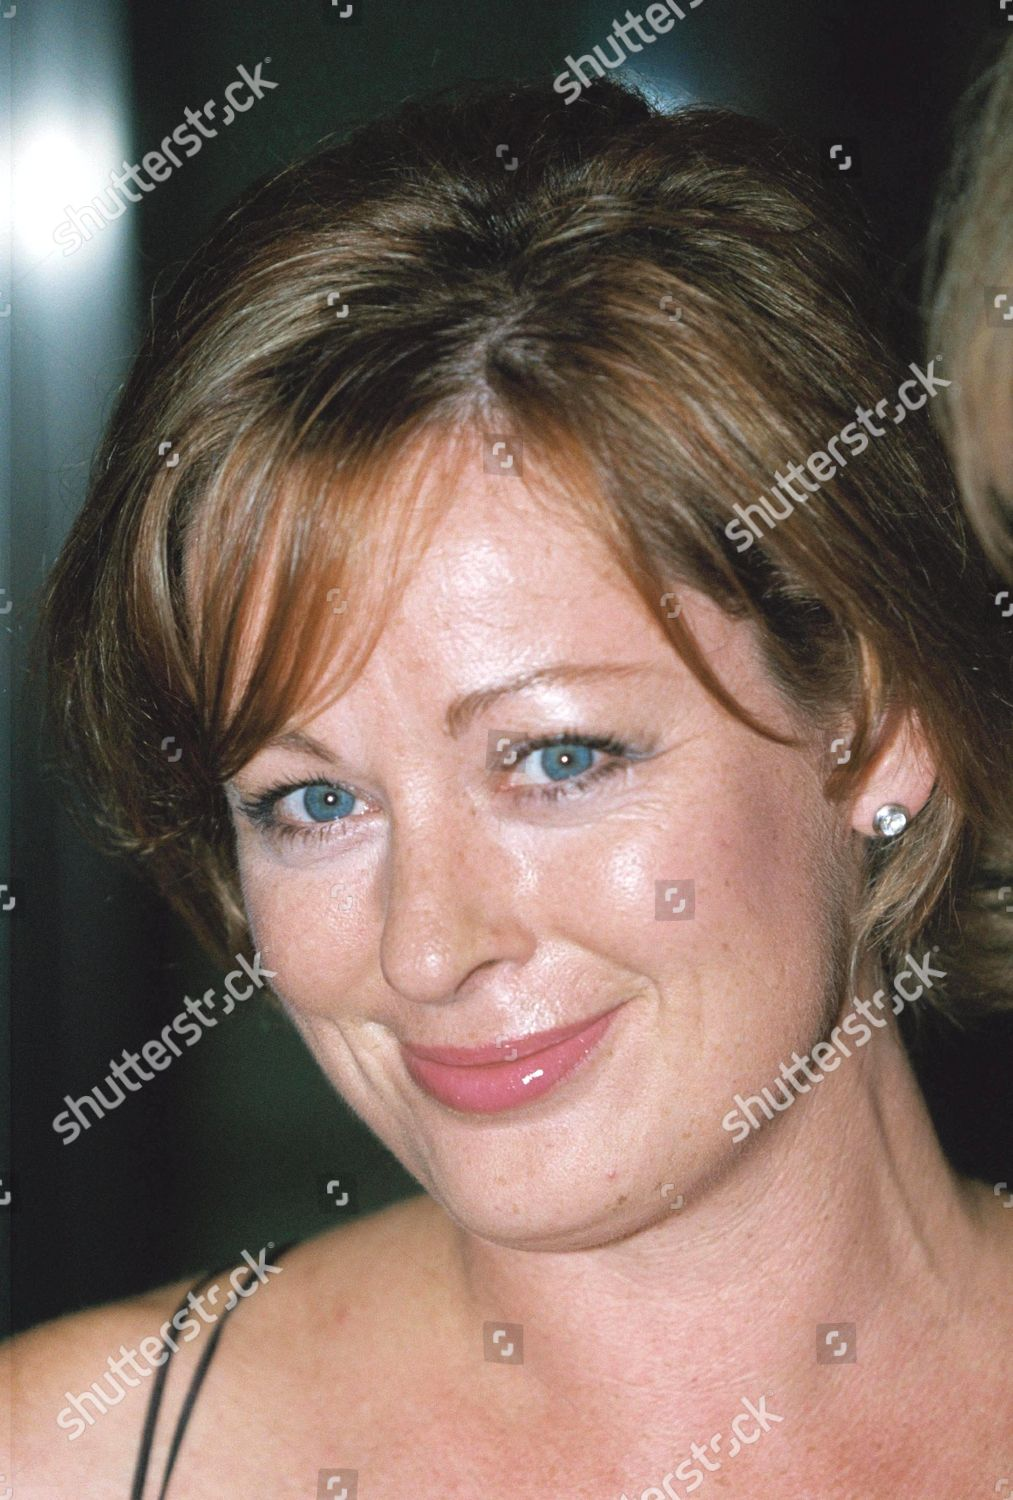 Sue Sally Hale Legendary American Polo Pioneer, broke the gender barrier in Polo. Sex videos June Whitfield (born 1925),Maura Tierney